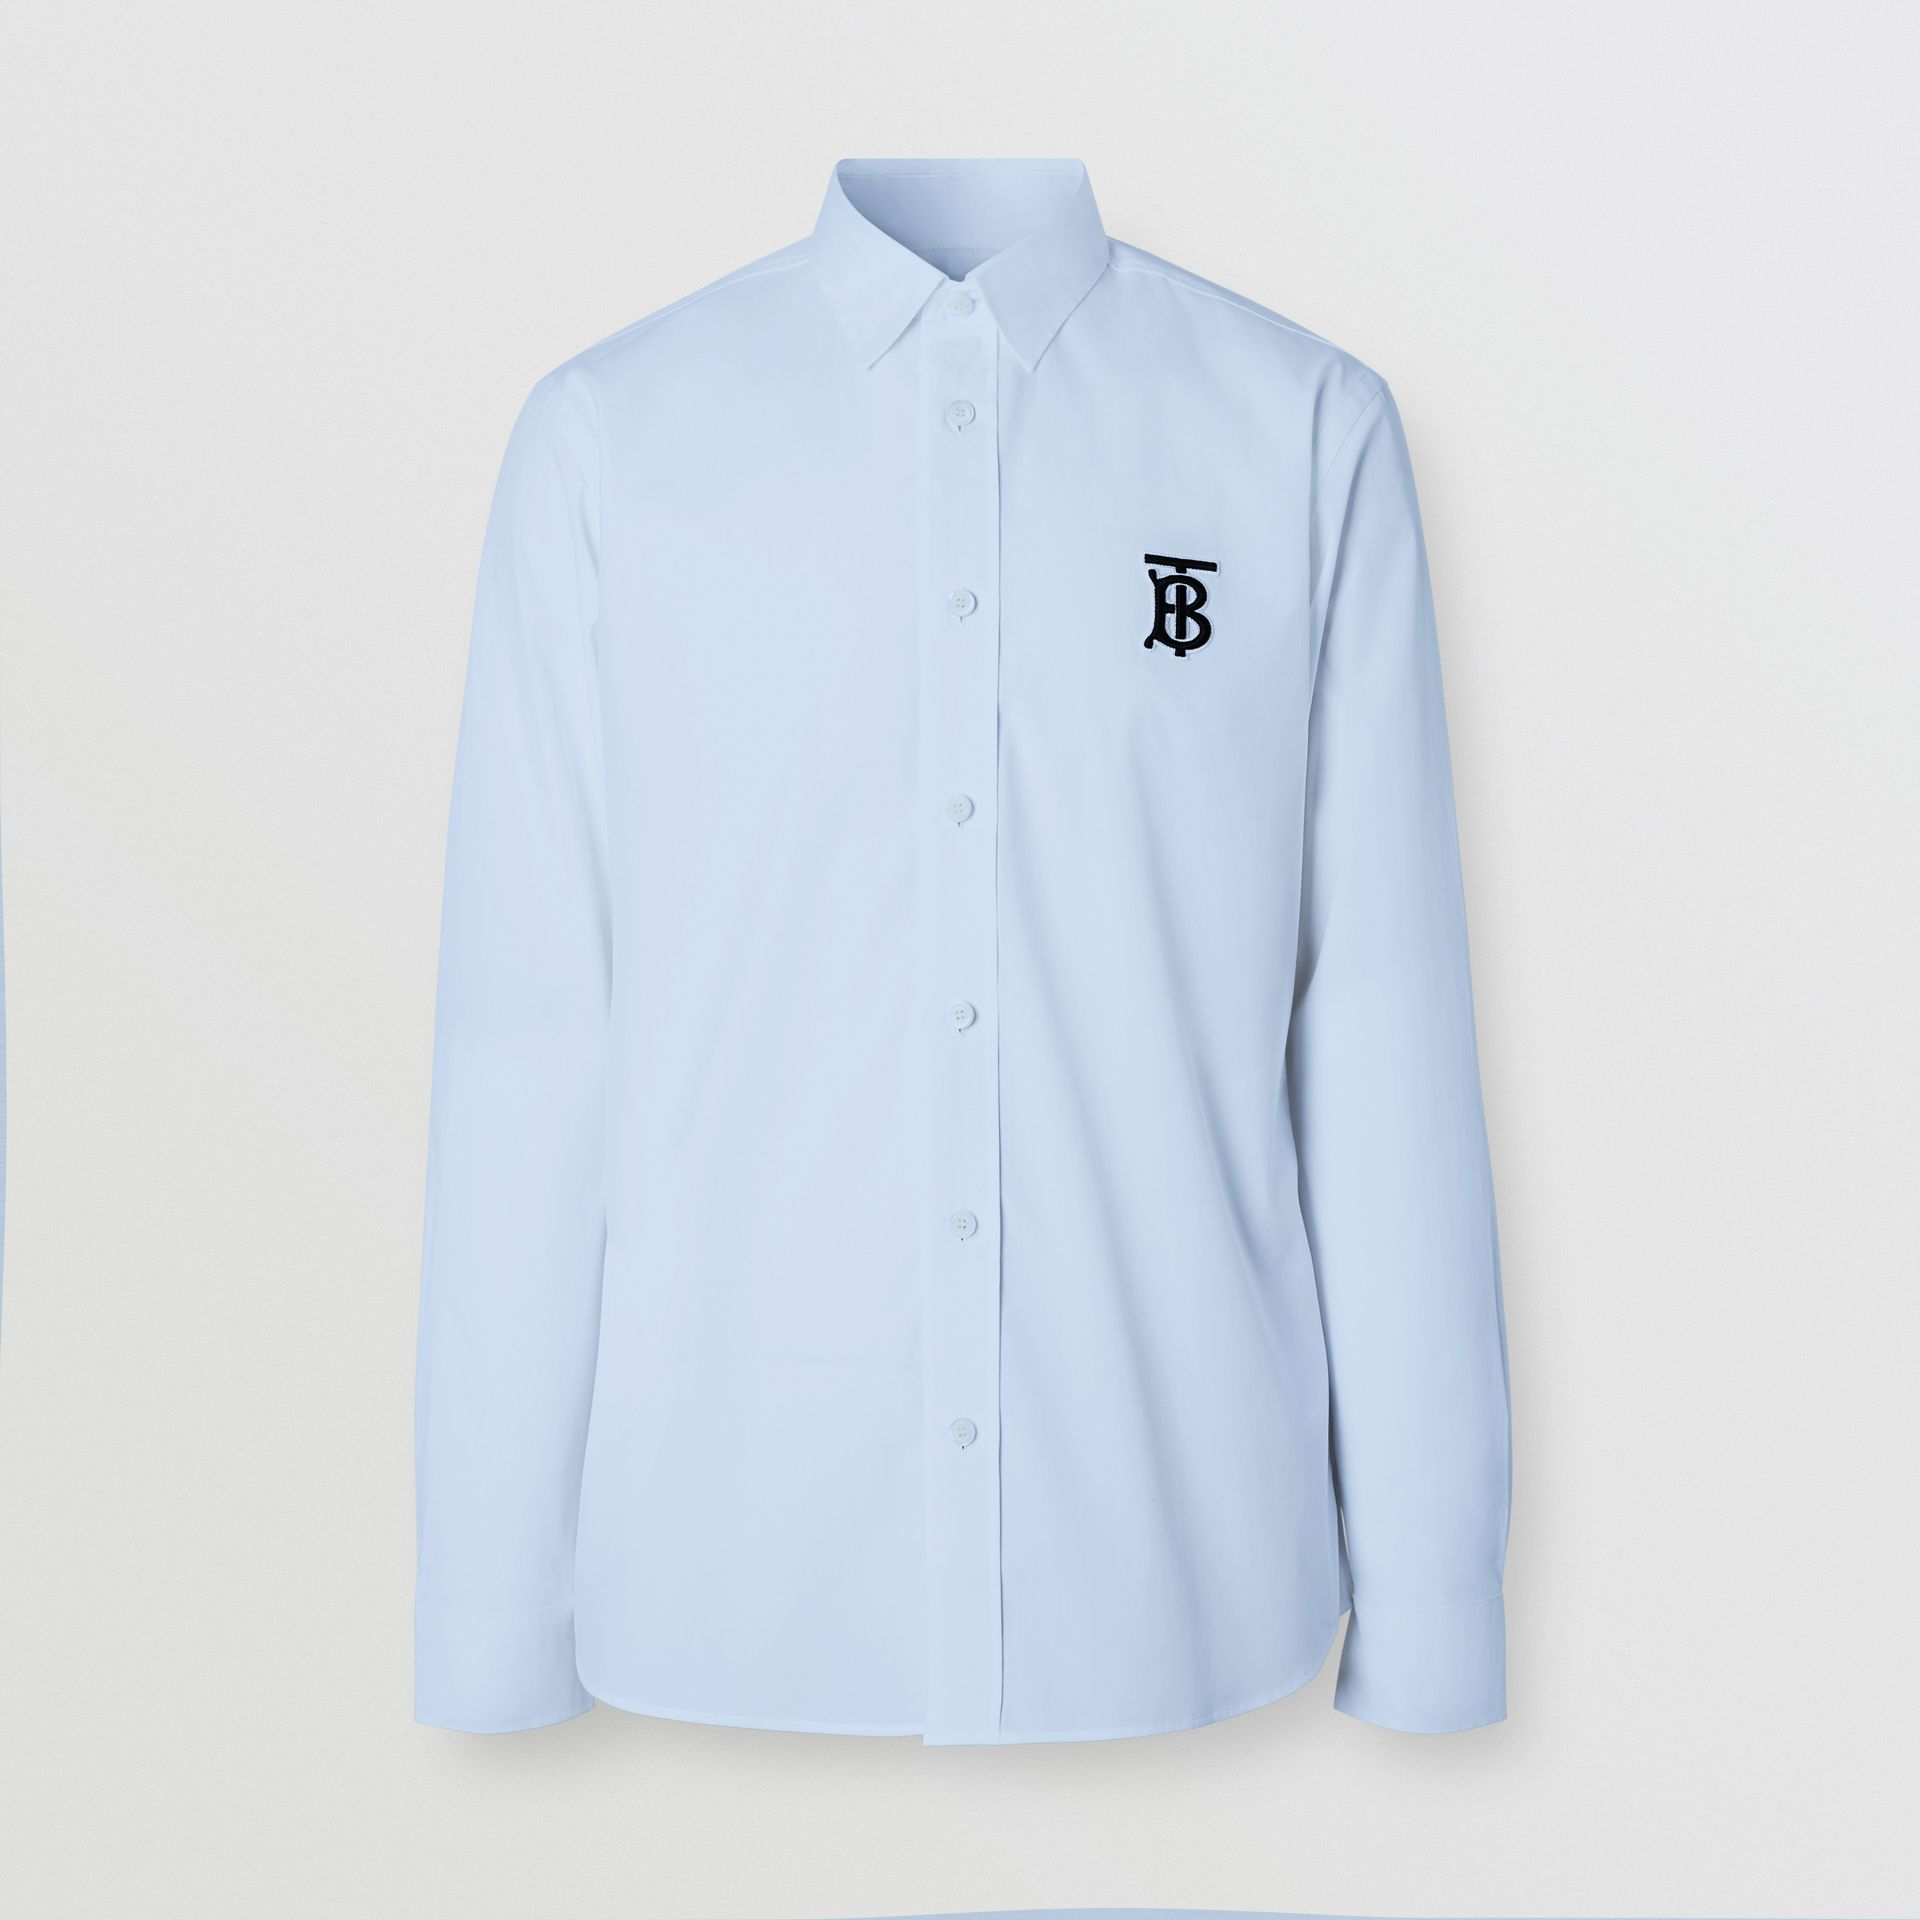 Embroidered Motifs Stretch Cotton Poplin Shirt in Pale Blue - Men | Burberry - gallery image 5